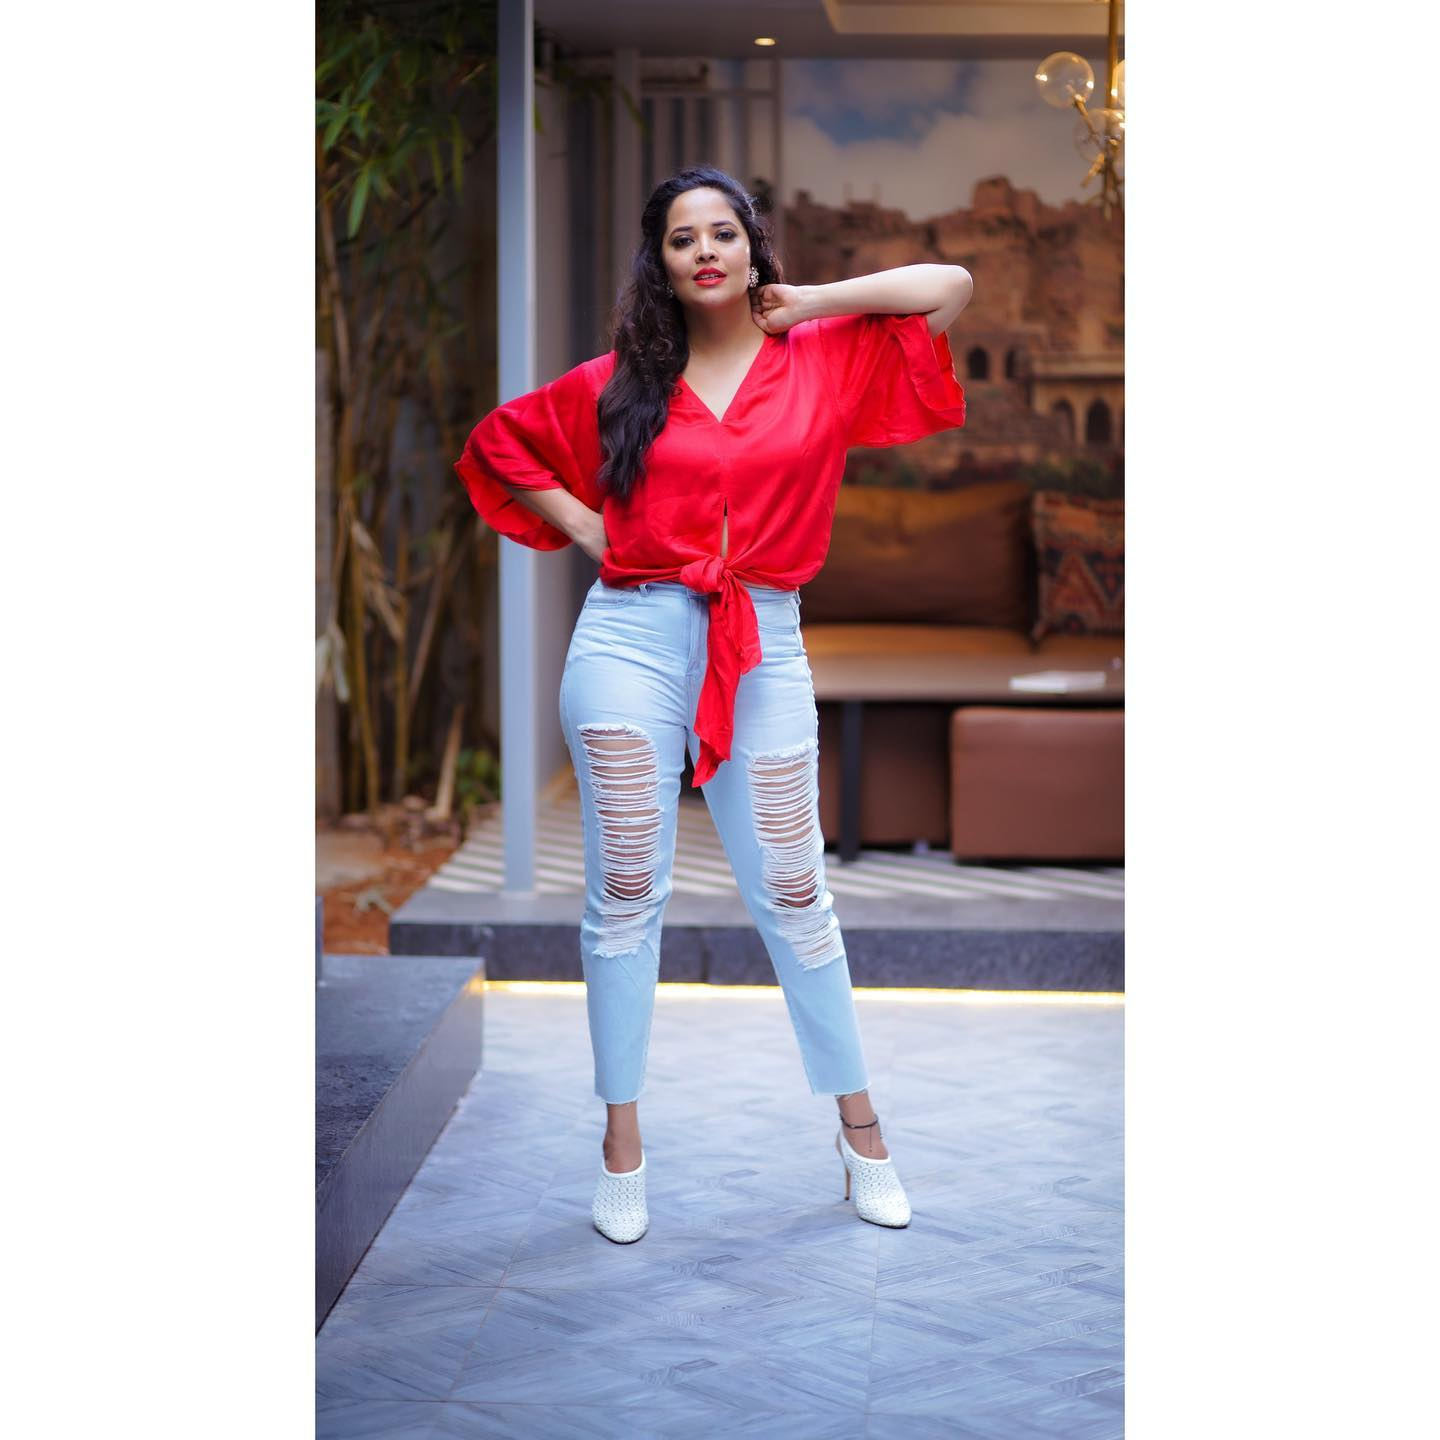 Beautiful actress Anasuya Bardwaj in denim distressed jeans and red shirt. 2021-05-02